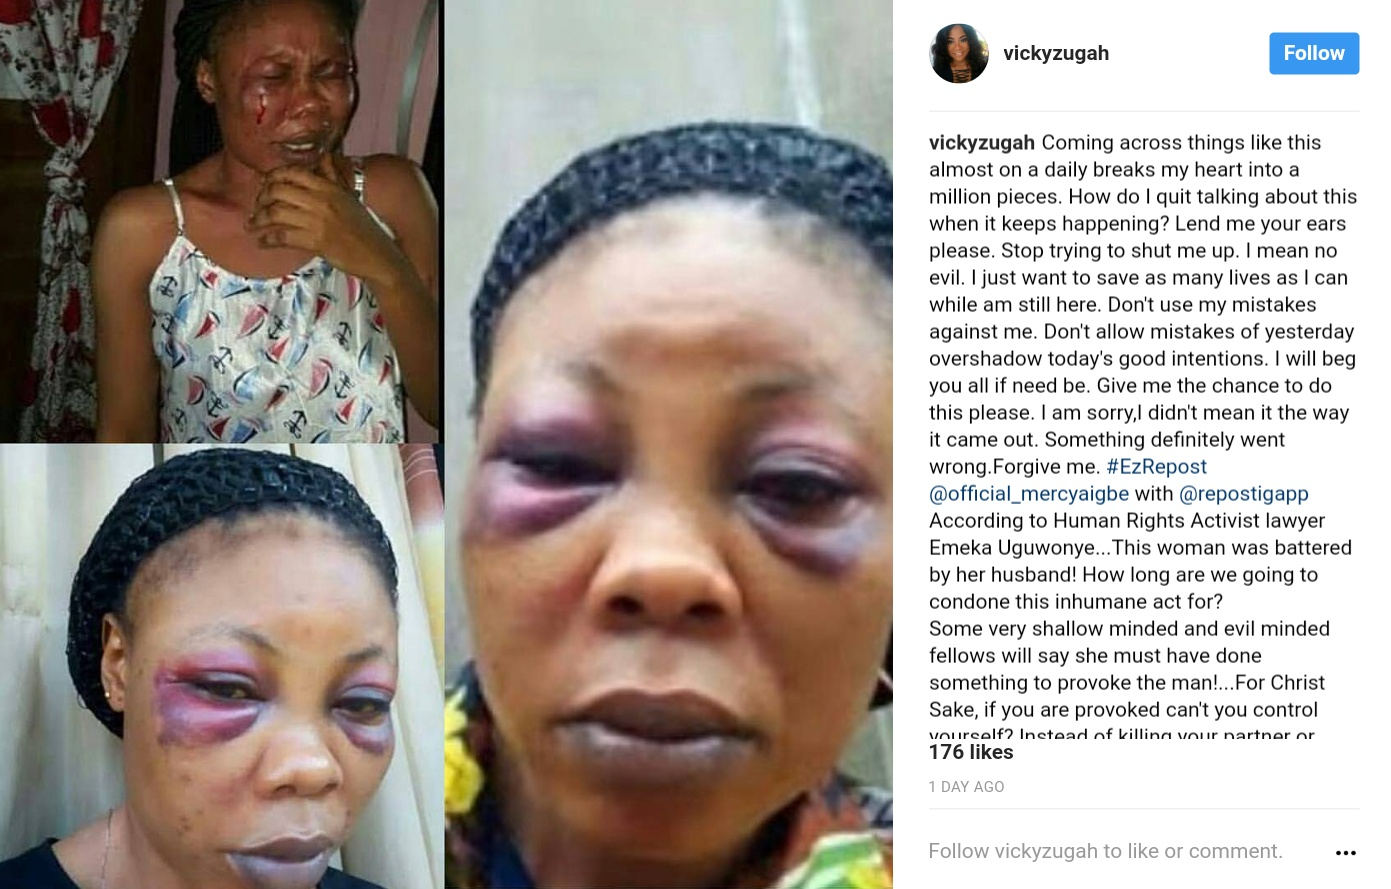 Vicky Zugah Has Apologized For Anal Sex Comments (1)